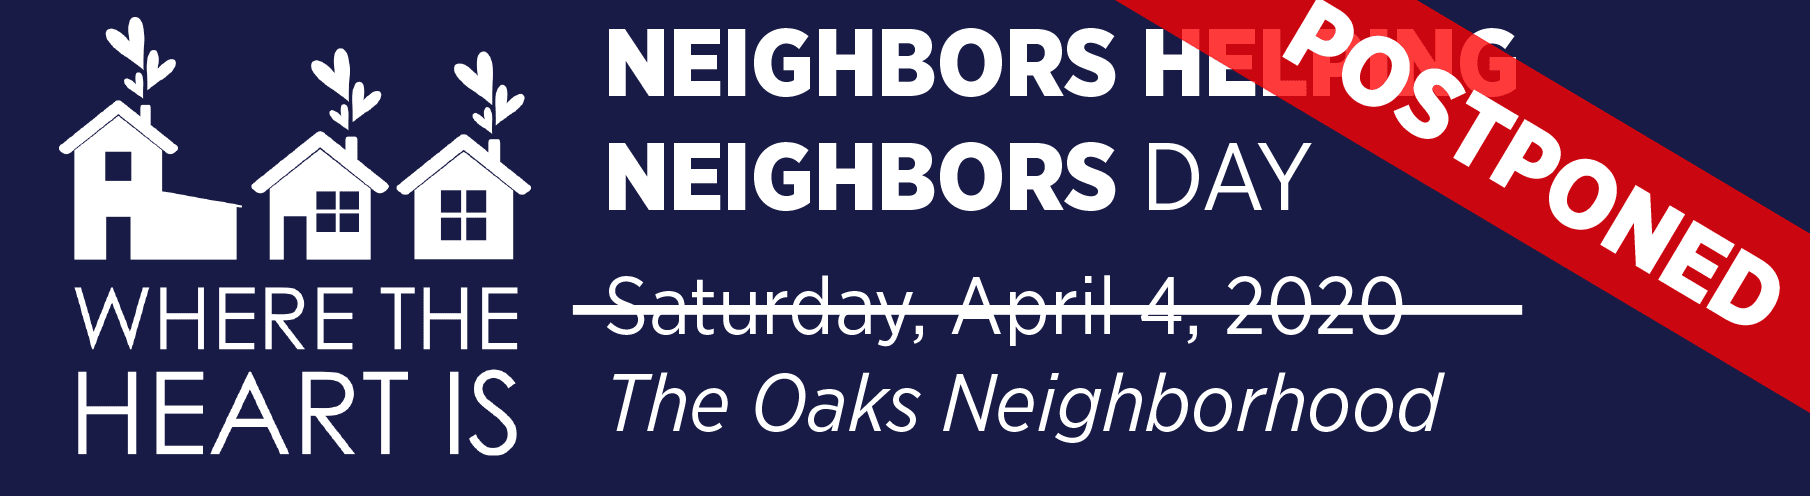 WHERE THE HEART IS: Neighbors Helping Neighbors Day, The Oaks Neighborhood POSTPONED